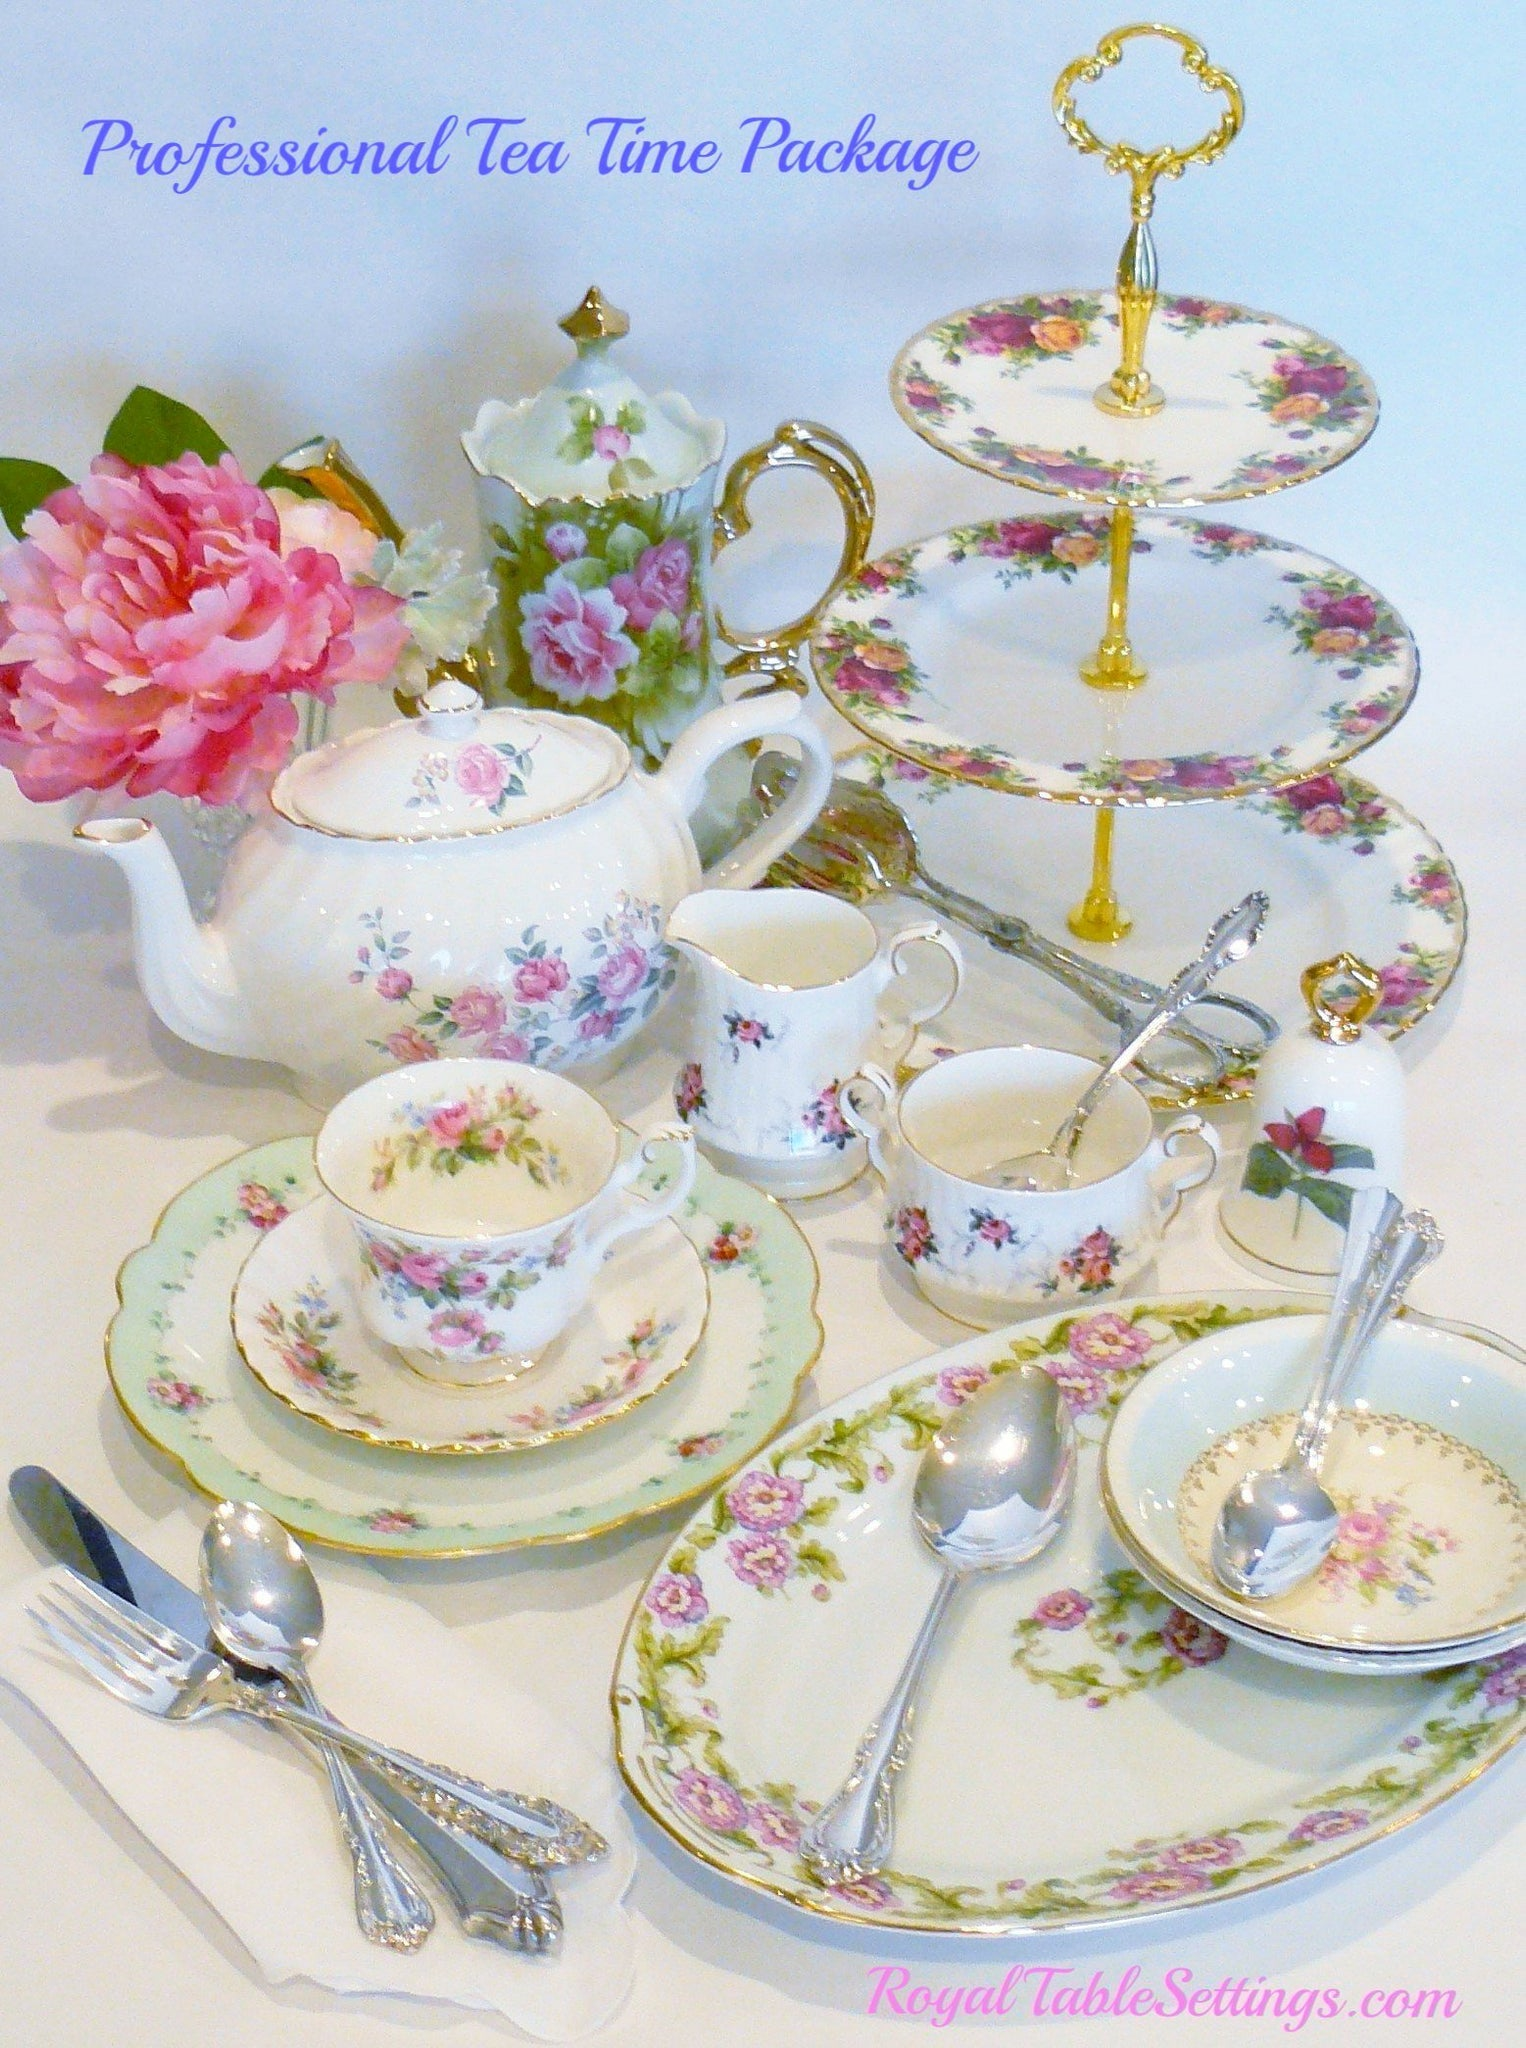 Professional Tea Time Package by Royal Table Settings